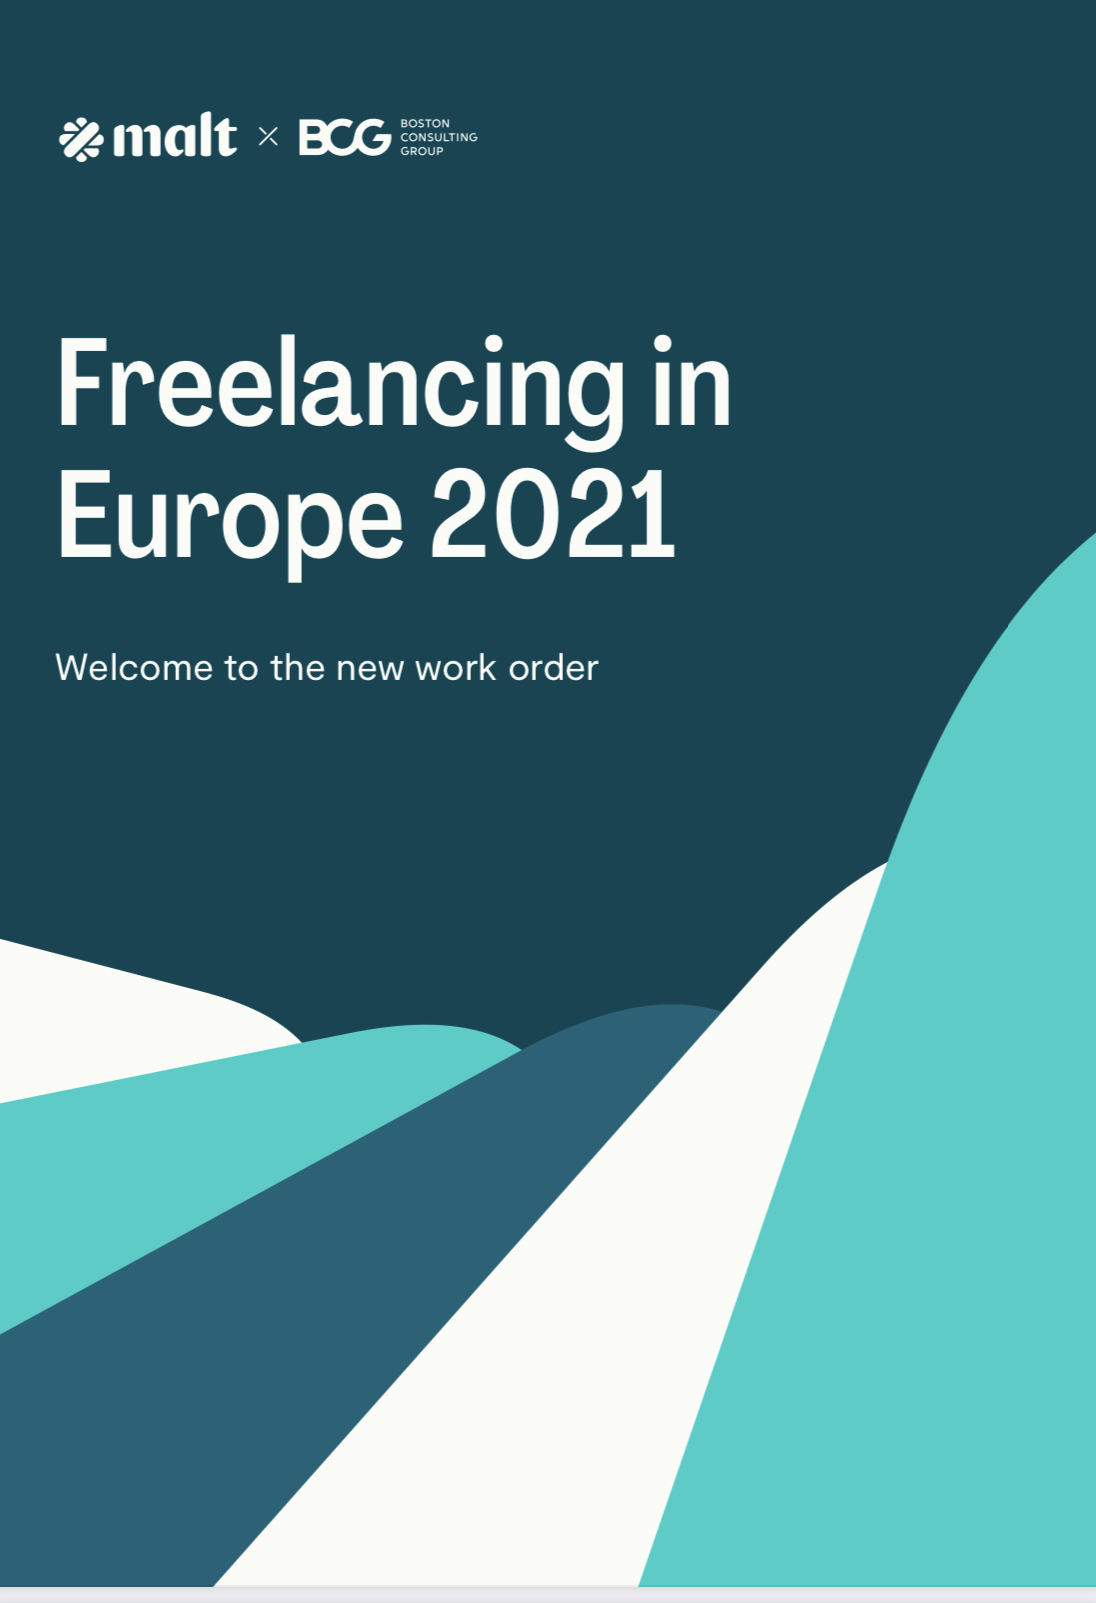 Freelancing in Europe 2021-Welcome to the new work order